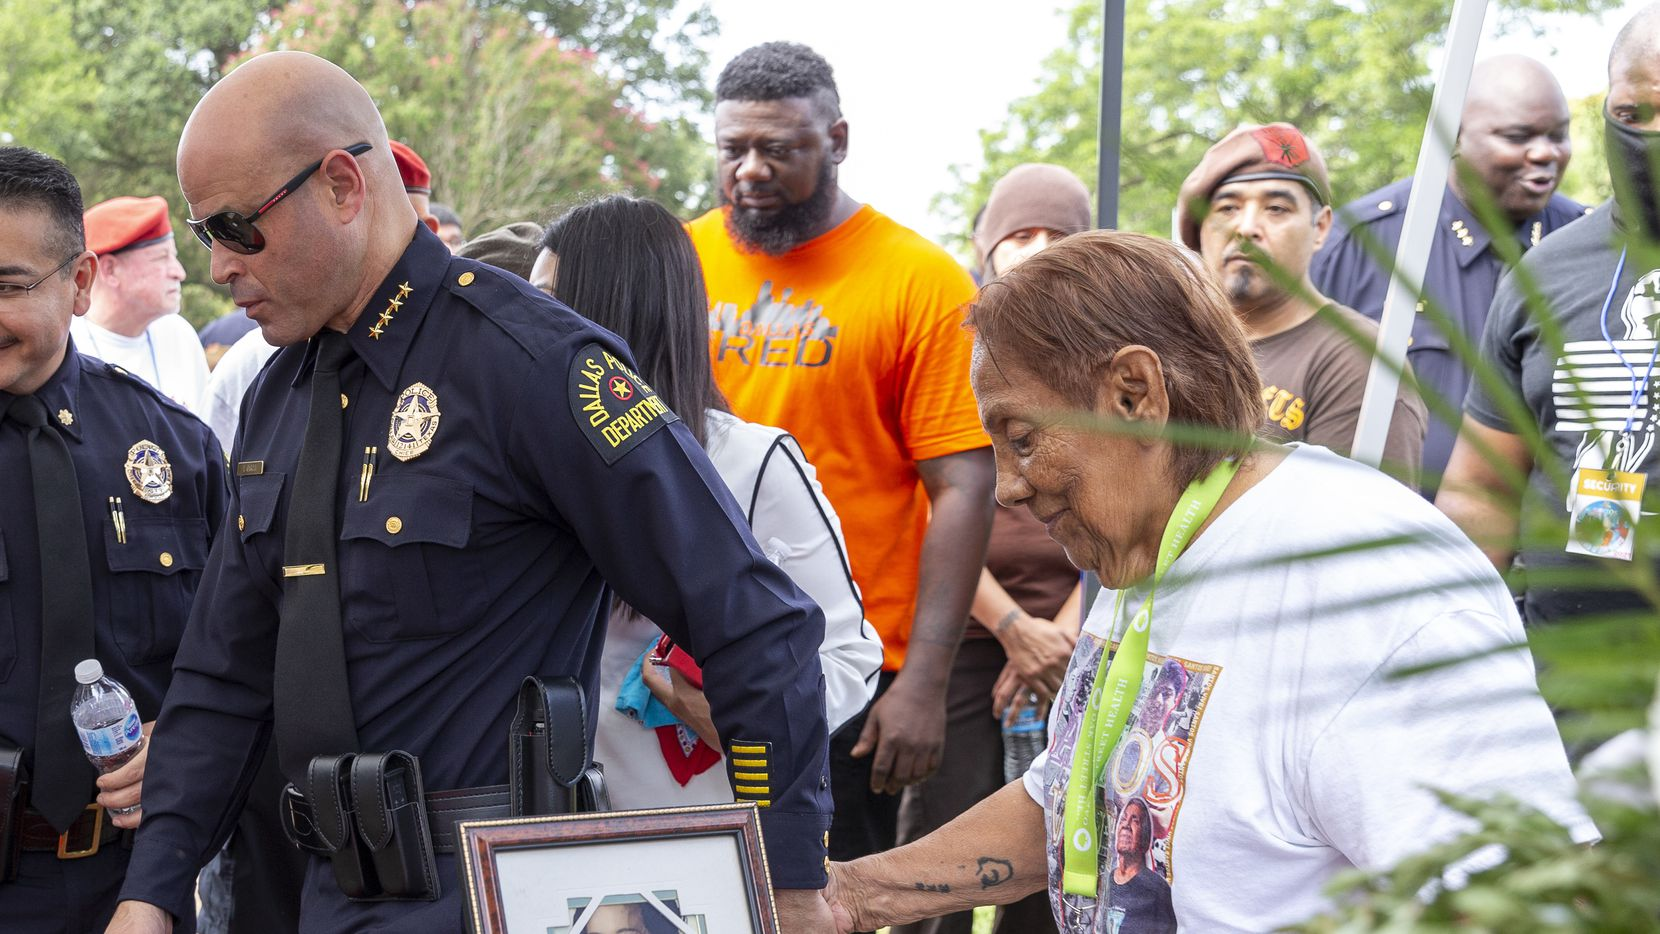 Dallas Police Chief Eddie Garcia (left) escorts Bessie Rodriguez, mother of Santos Rodriguez, back to her seat after placing a wreath on her son's headstone during a memorial service at Oakland Cemetery in South Dallas on Saturday, July 24, 2021.